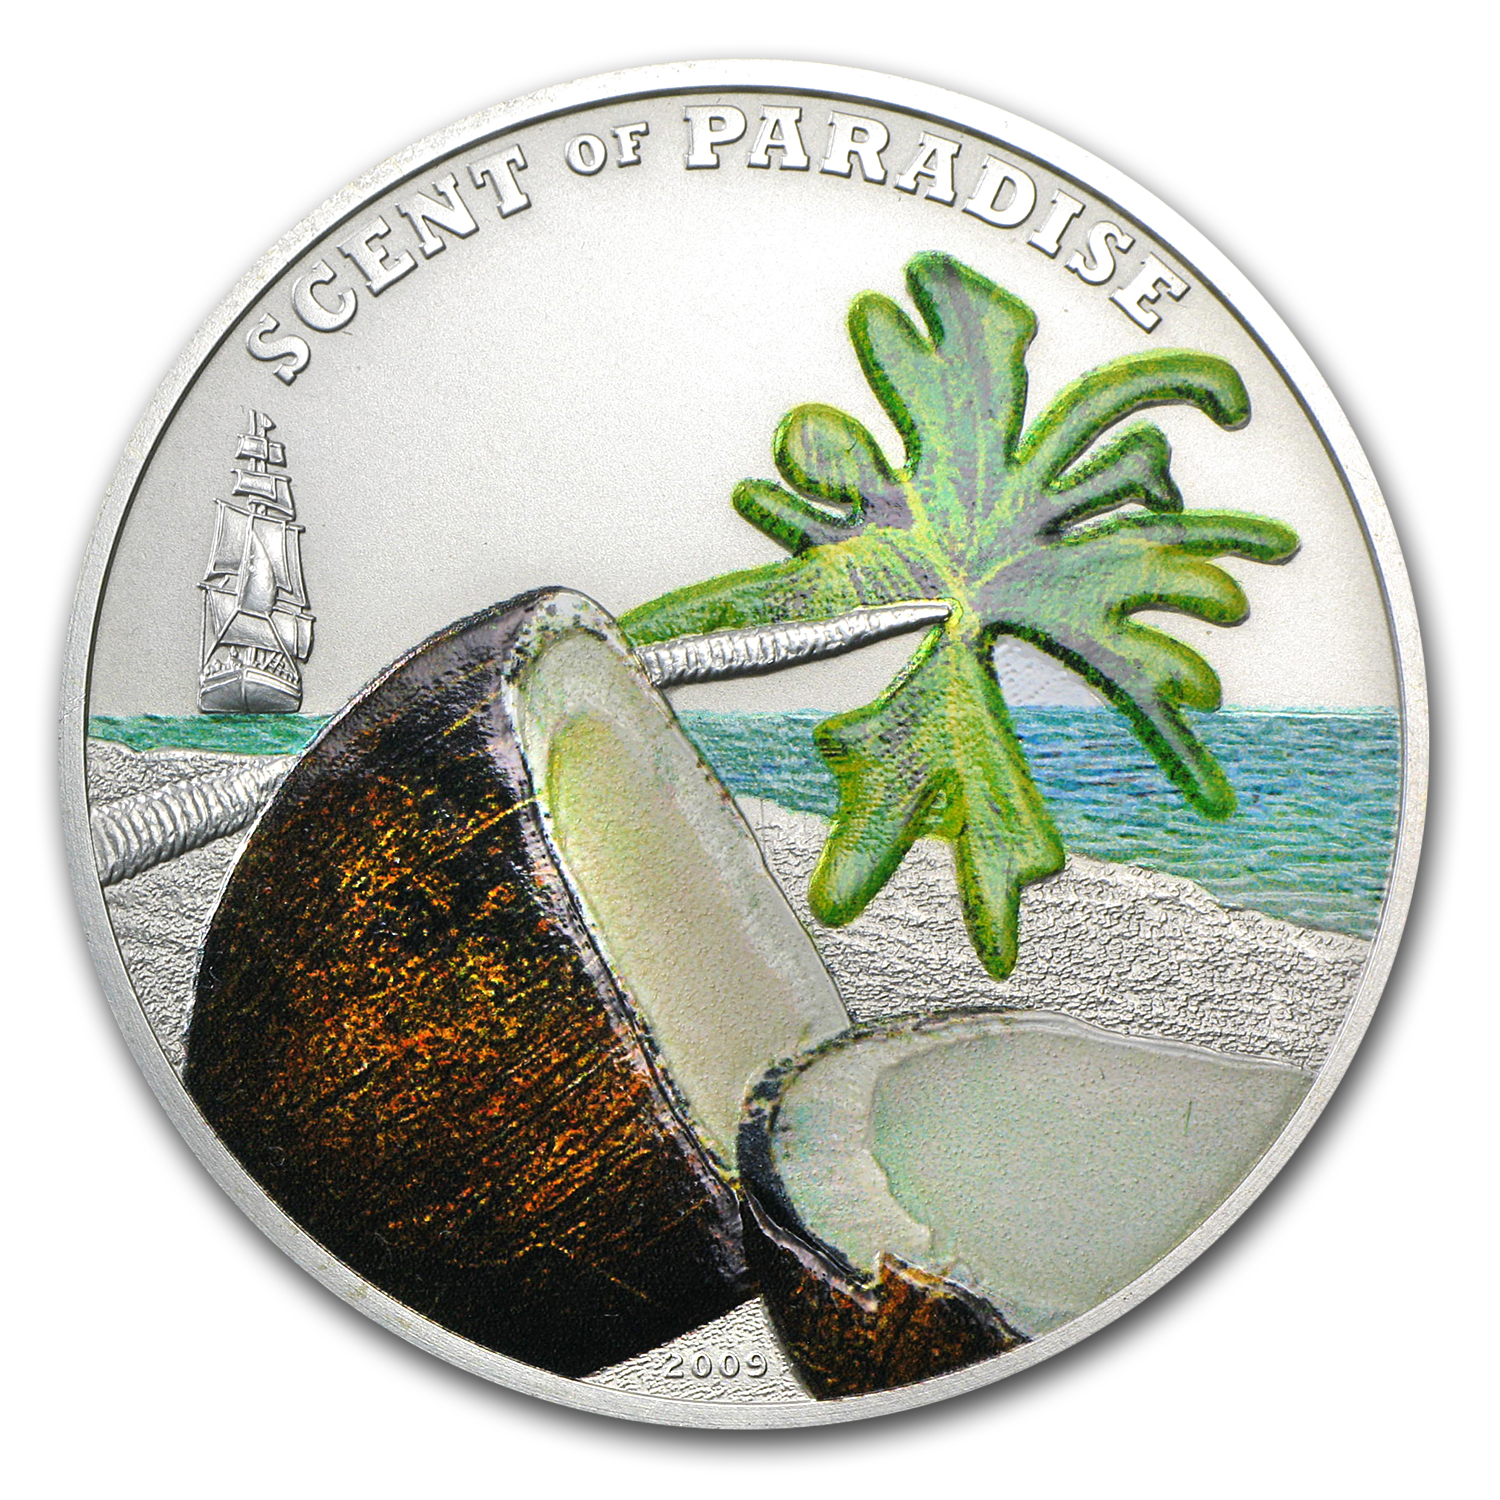 2009 Palau Silver $5 Scent of Paradise Coconut